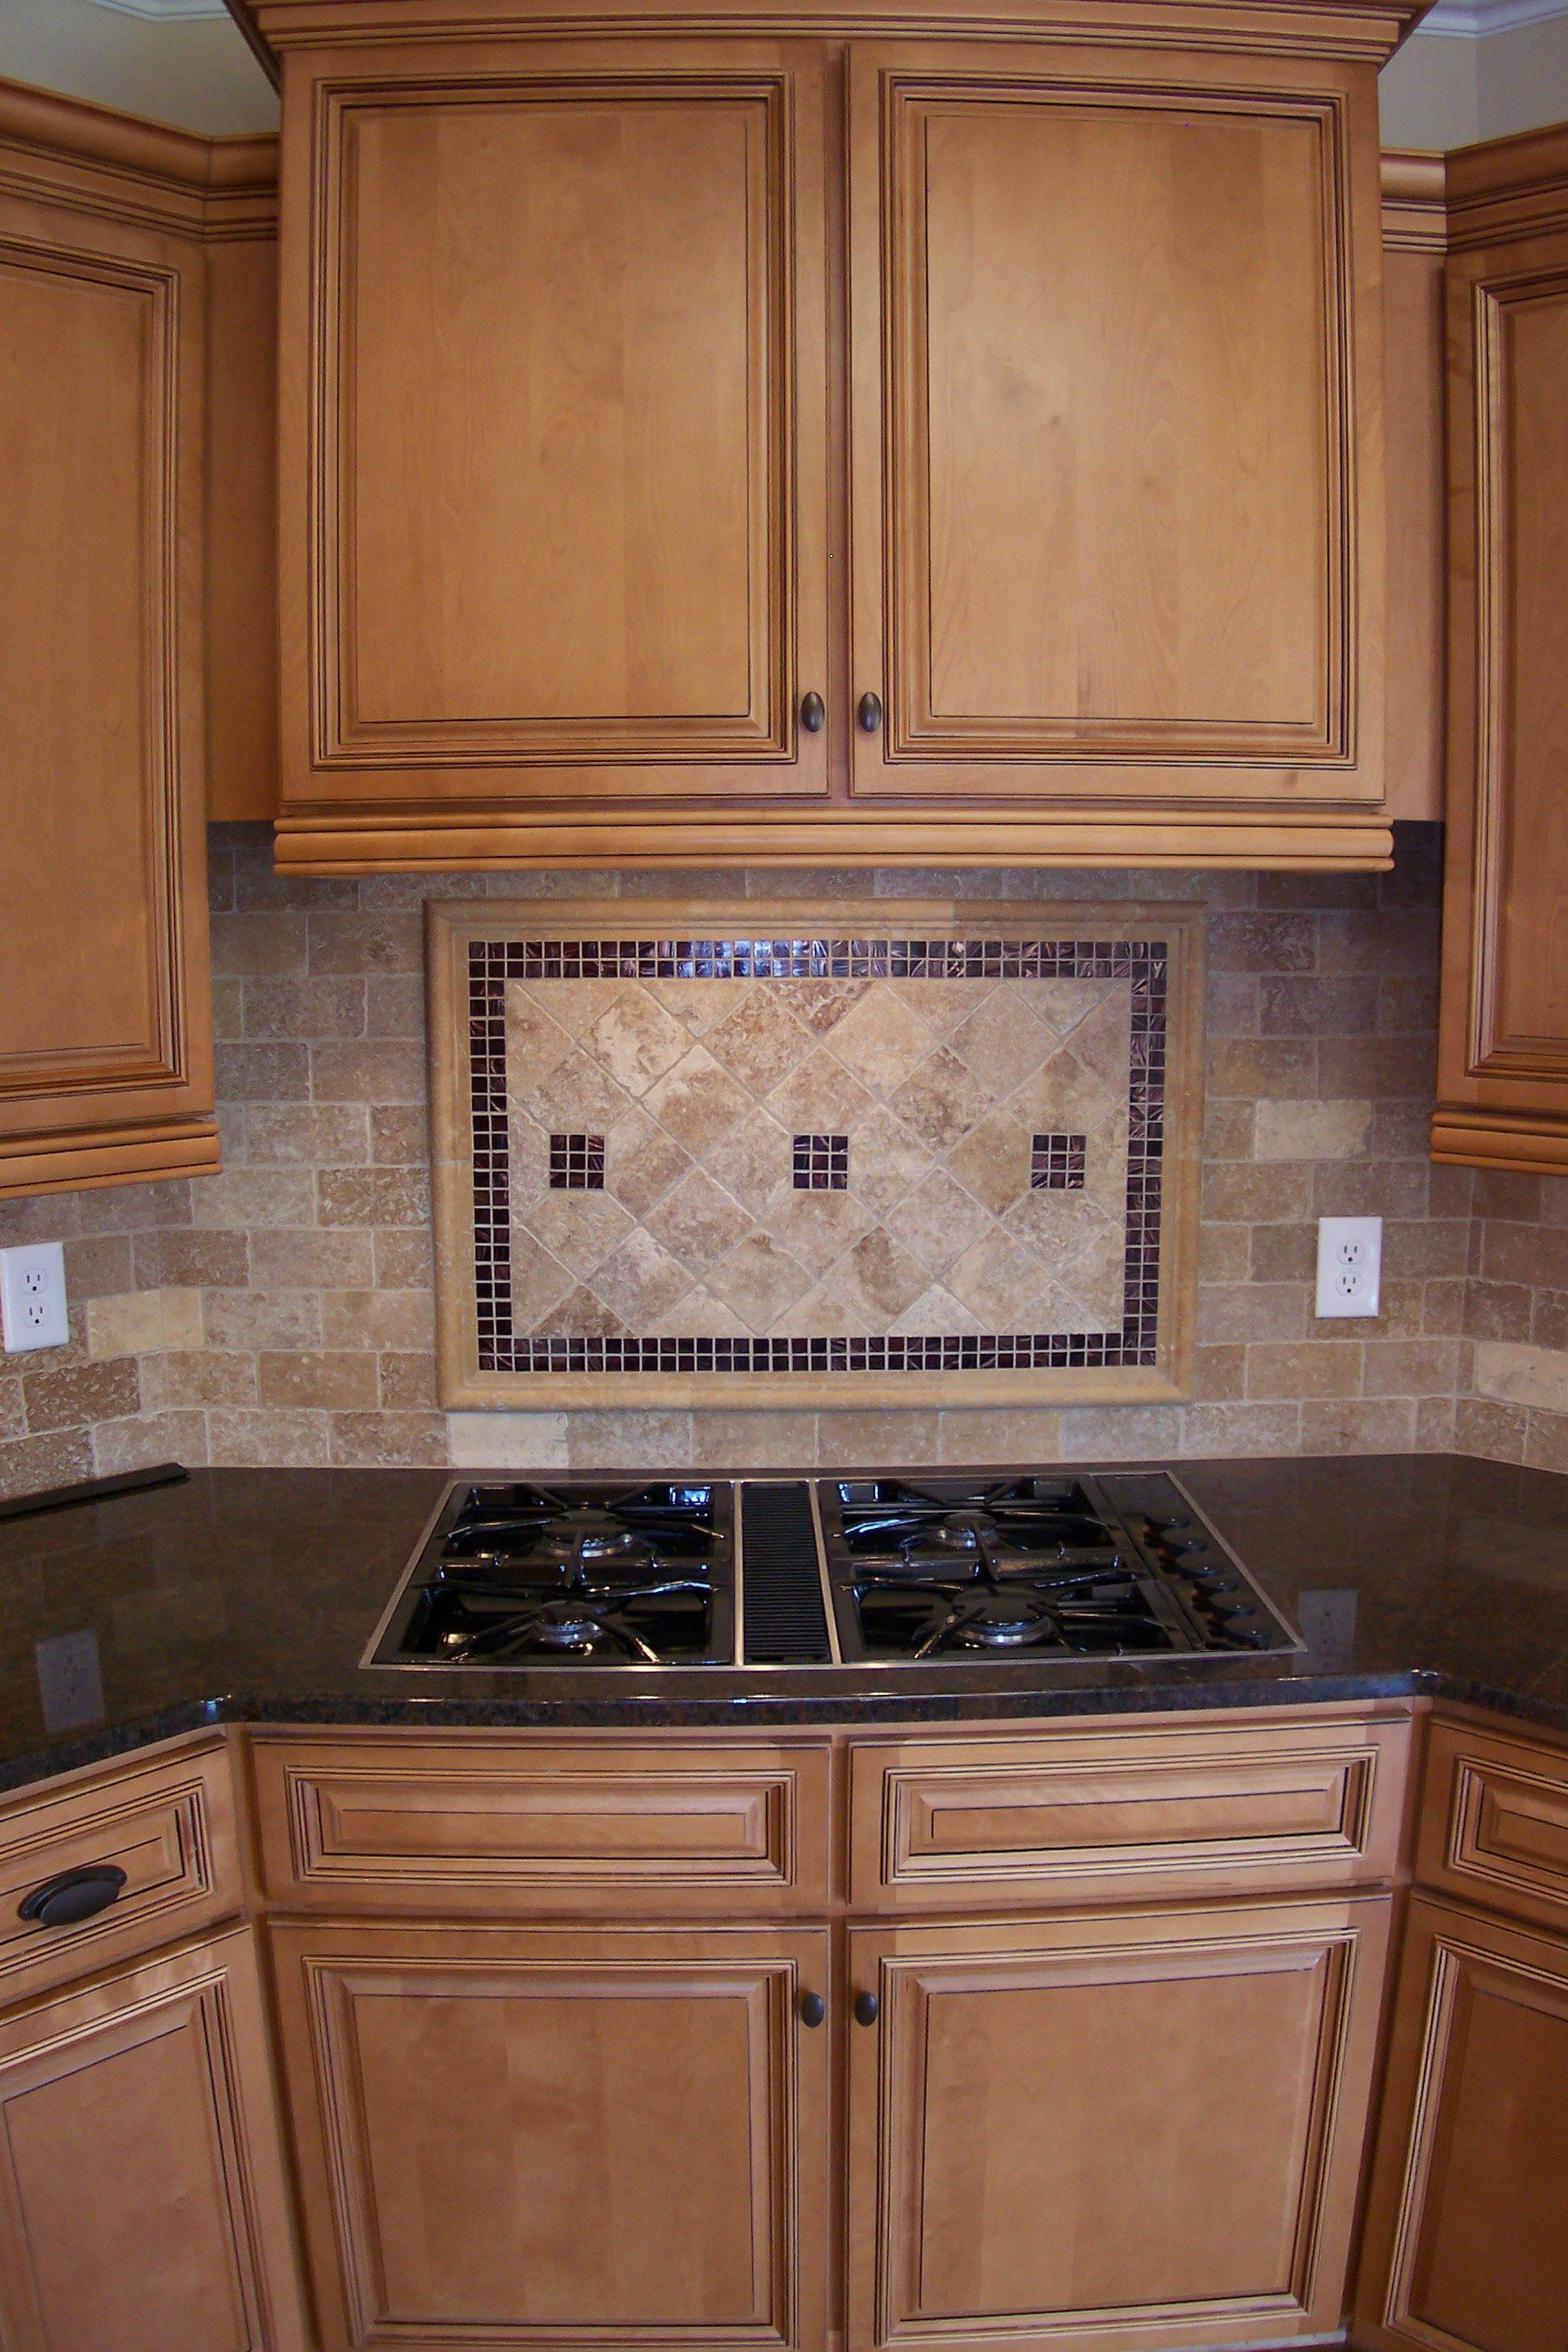 Backsplash Cooktop Google Search Kitchen Kitchen